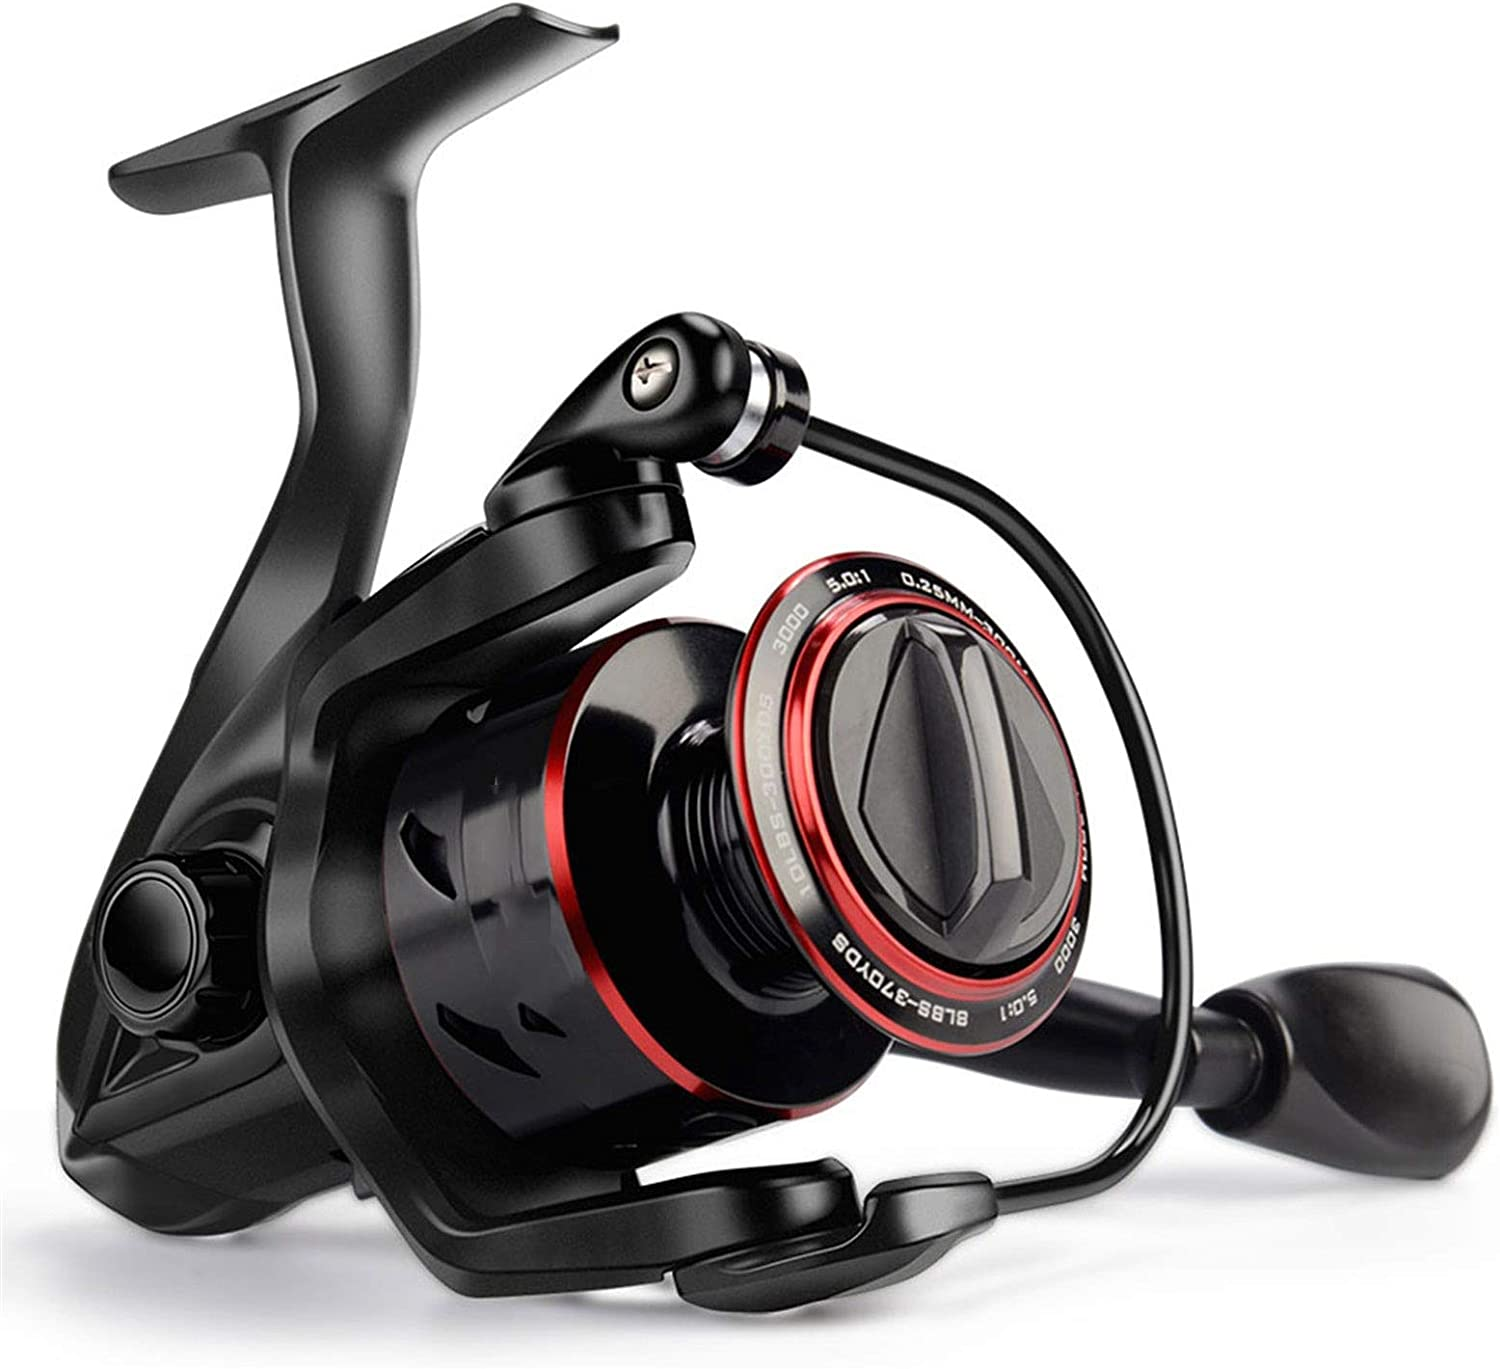 HUACHEN-LS Fishing Opening large release sale reels Super Light Spinning New products world's highest quality popular M 8KG Reel